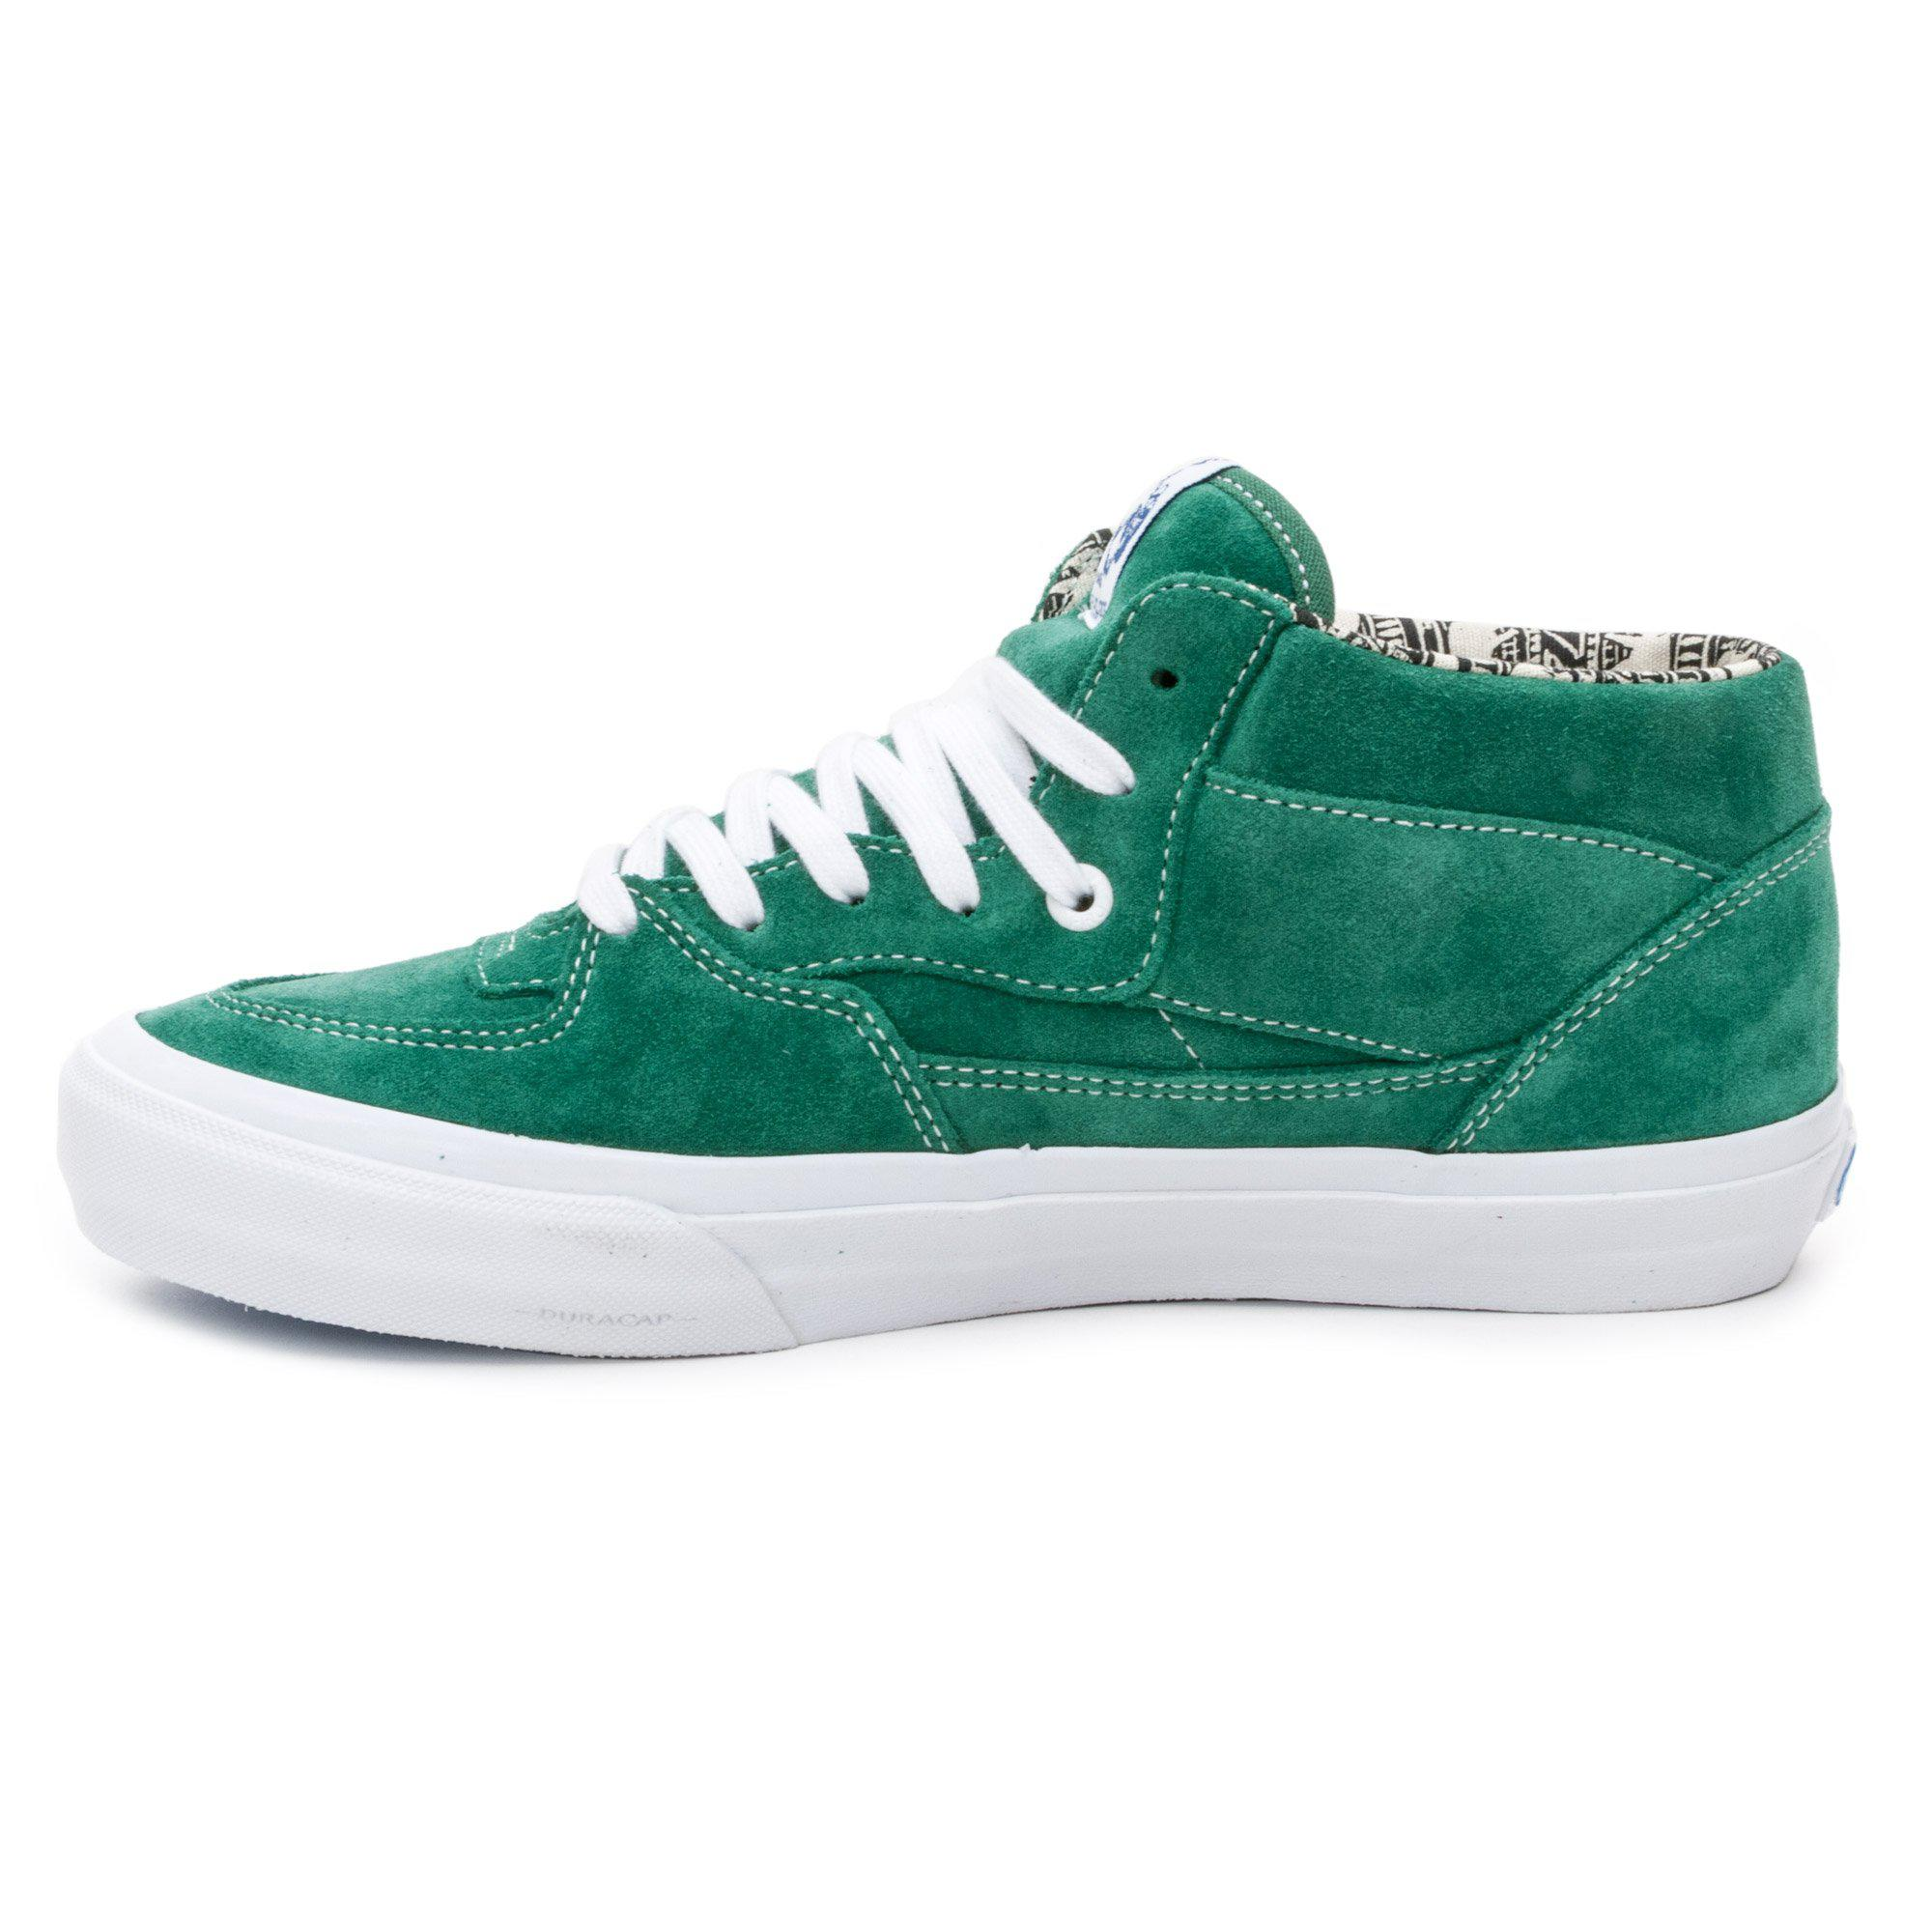 b3c06be4ab Lyst - Vans Half Cab Pro Ray Barbee Shoes in Green for Men